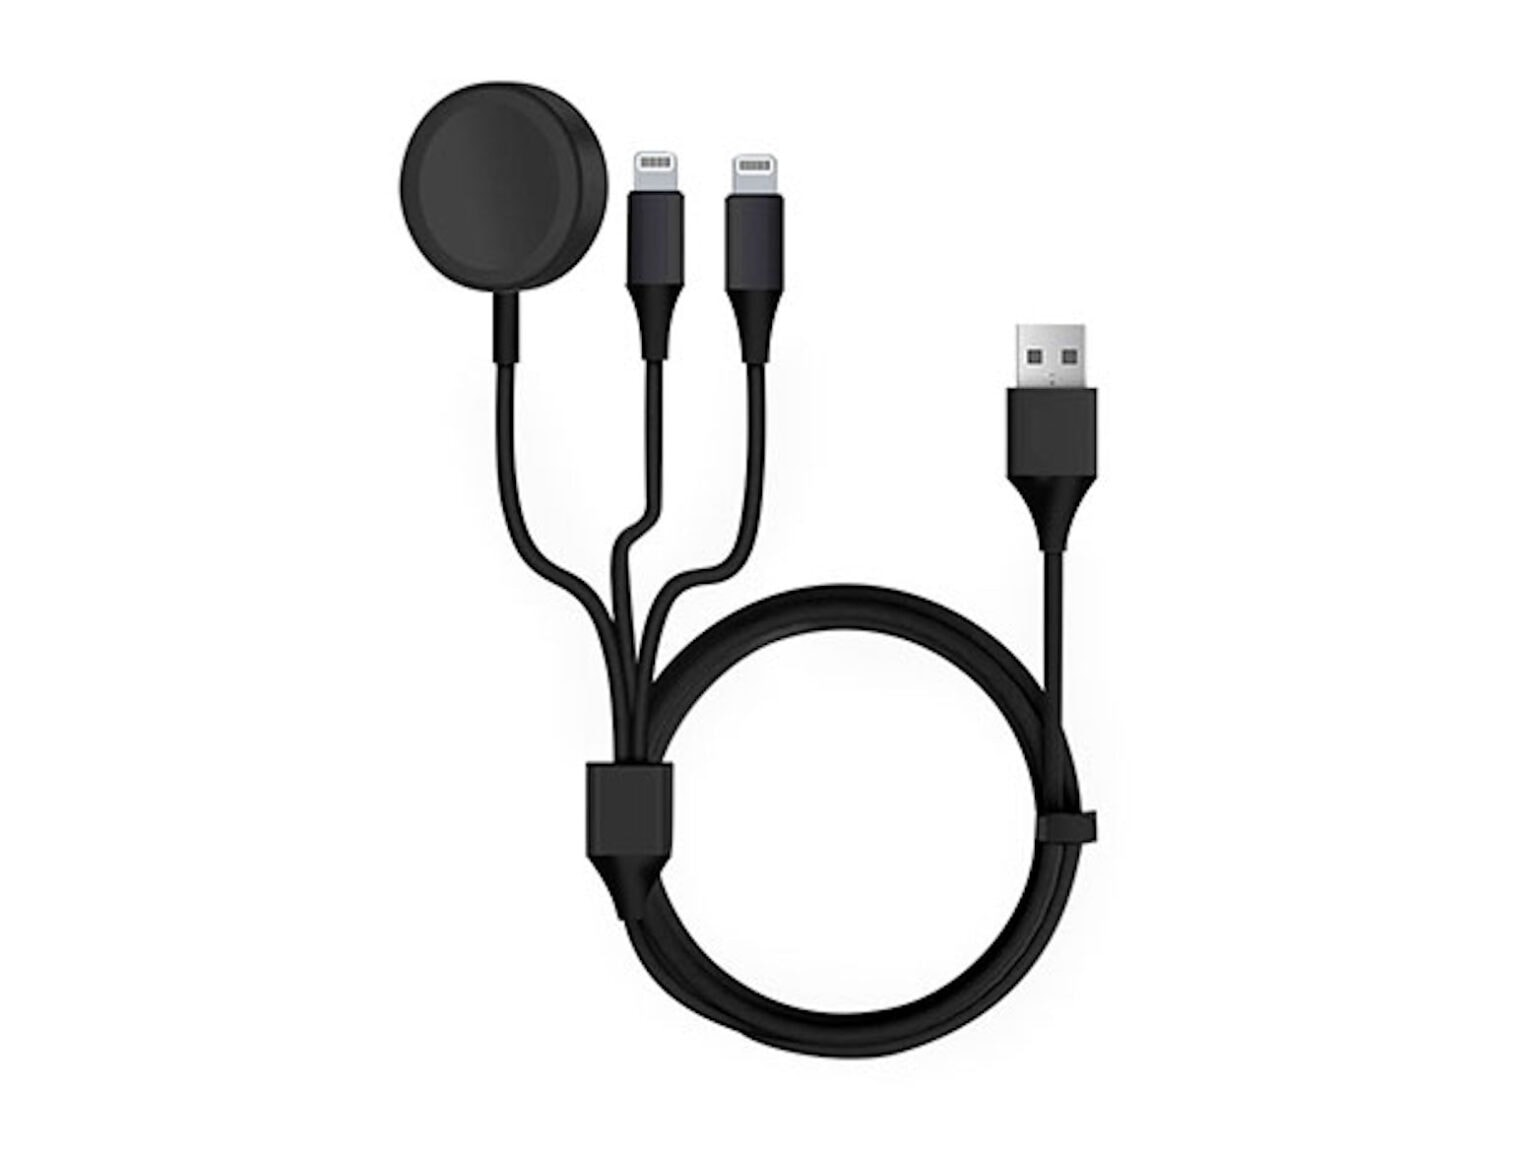 Power up all your apple devices with this single cord.